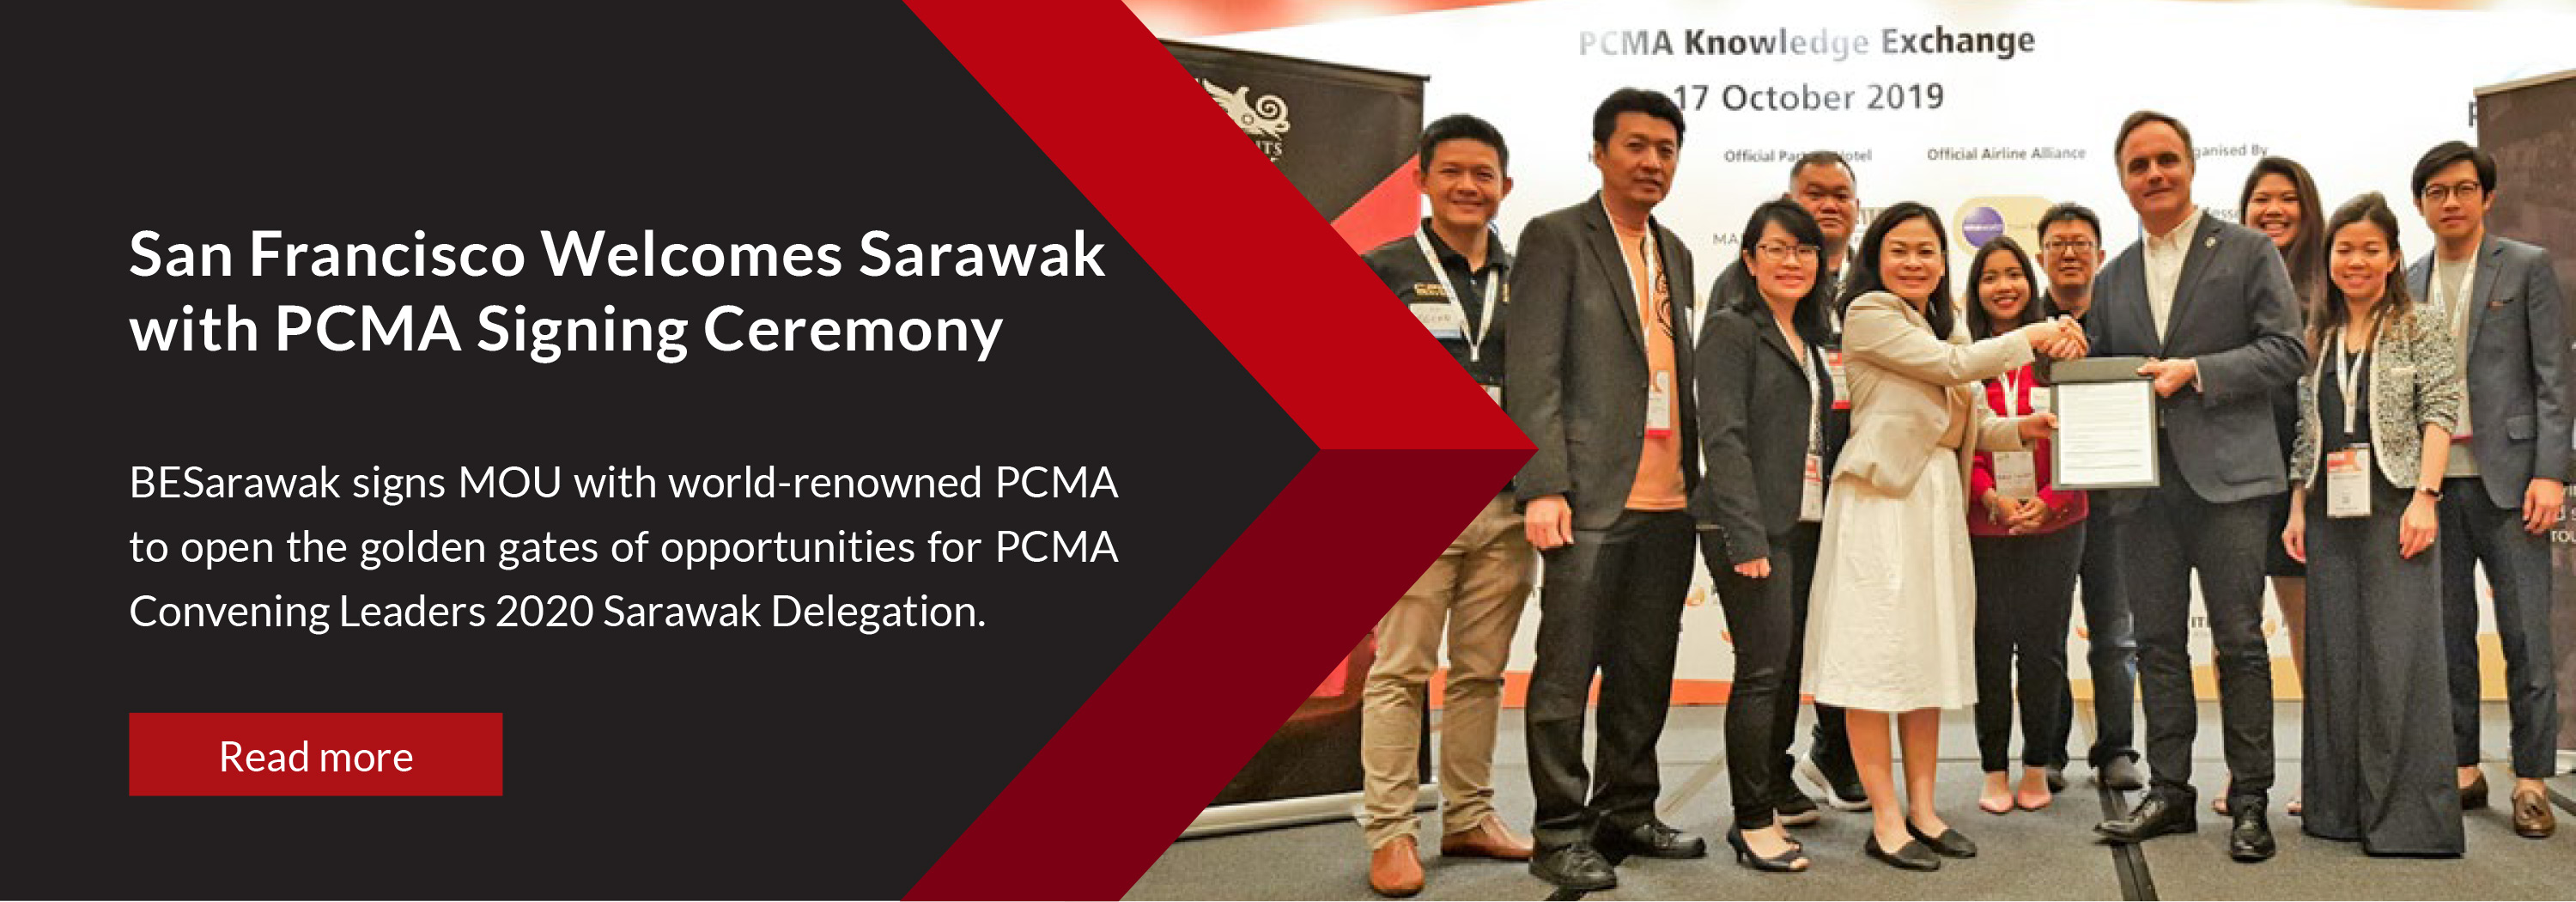 BESarawak signs MOU with world-renowned PCMA to open the golden gates of opportunities for PCMA Convening Leaders 2020 Sarawak Delegation.